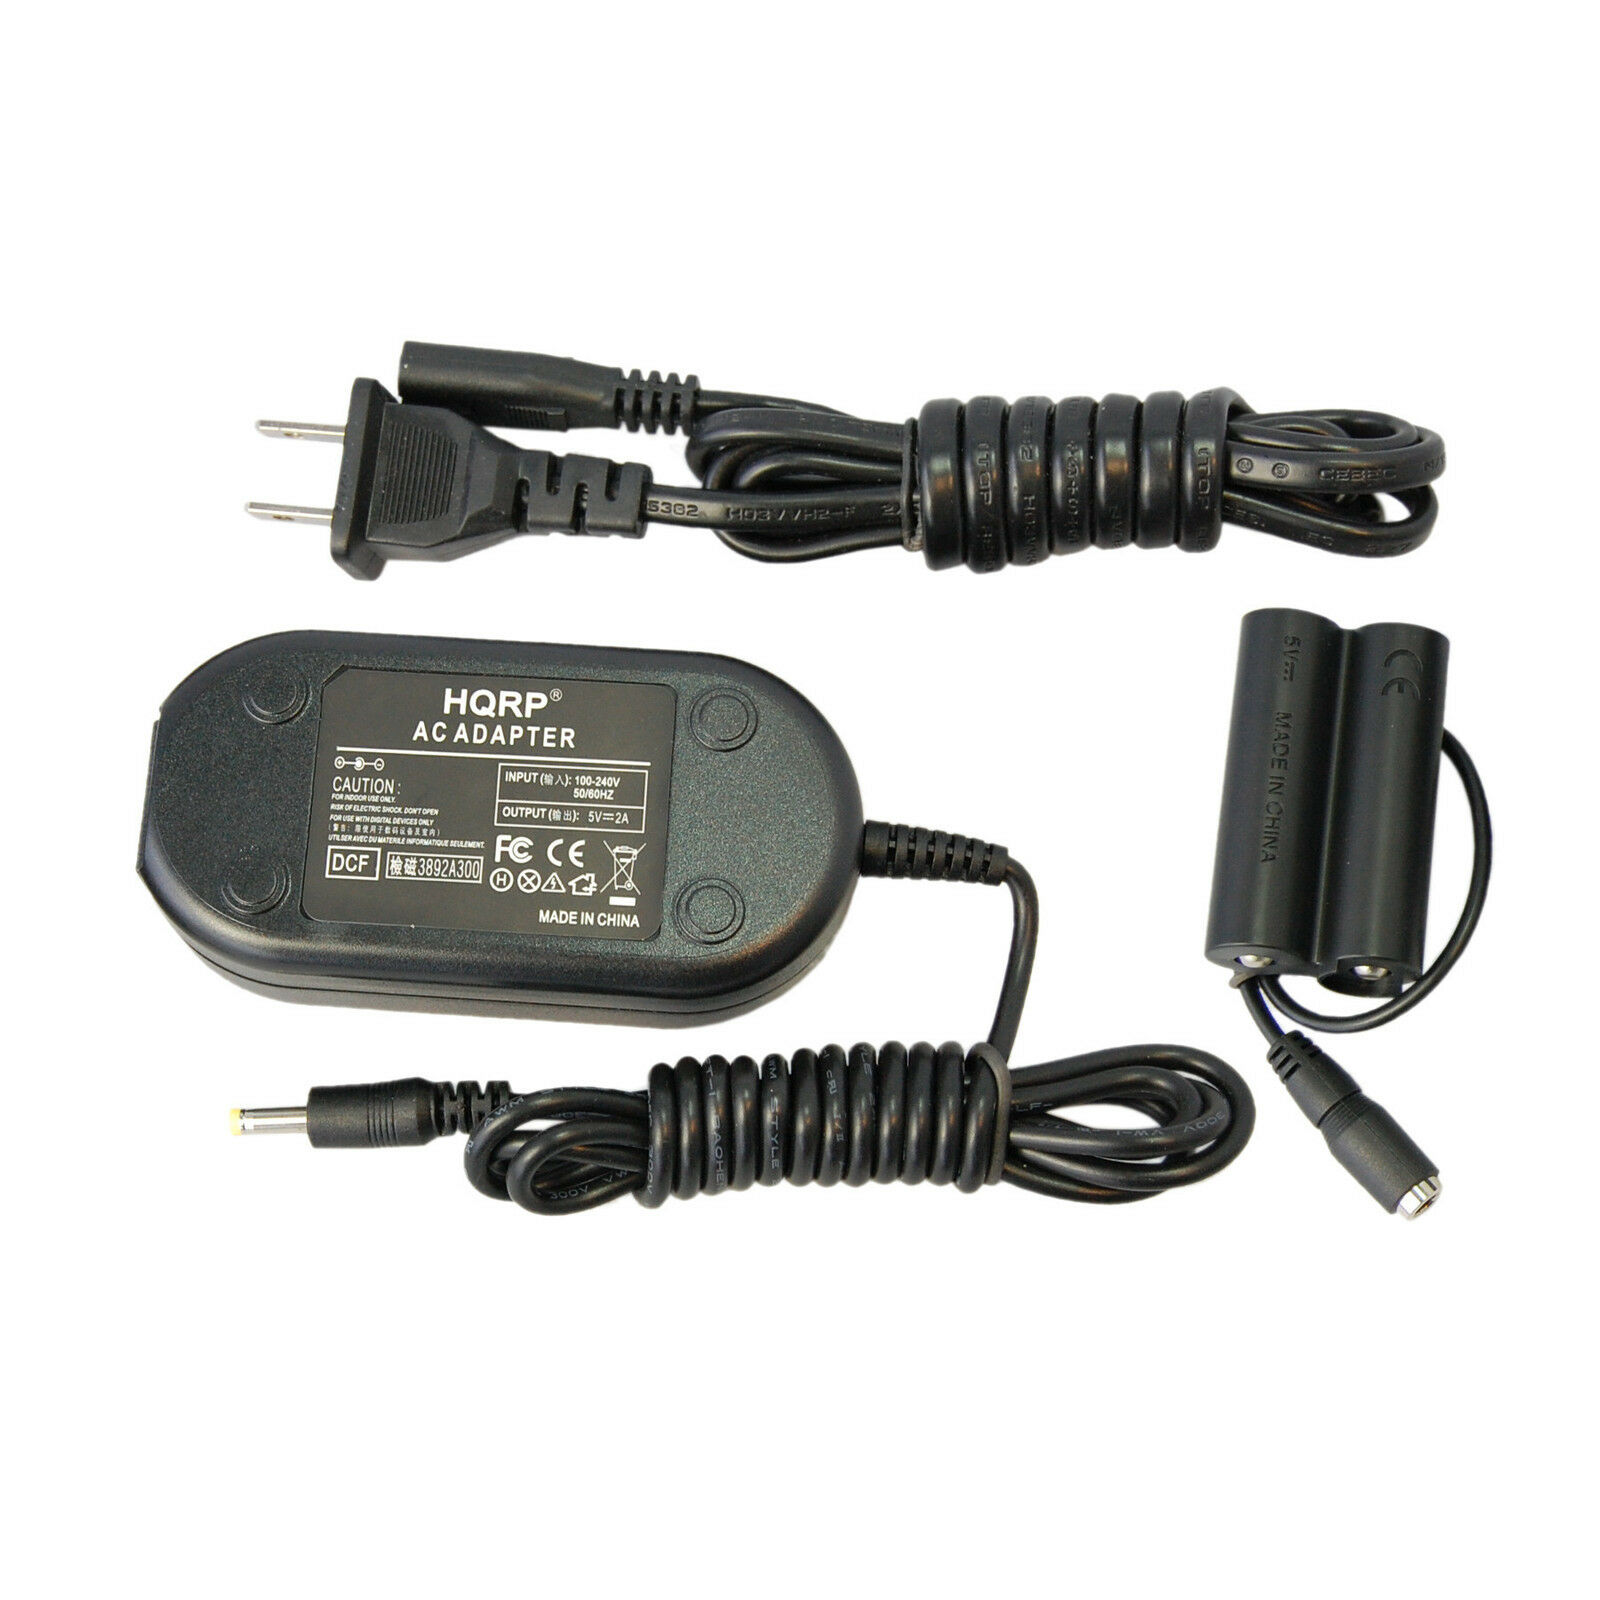 S3200 S2950 S4250 S2980 S2900 S4400 S4200 S4300 S2990 S2940 S4500 S4500HD Digital Camera Plus Euro Plug Adapter HQRP Kit AC Power Adapter and DC Coupler for Fuji Fujifilm Finepix S2800HD